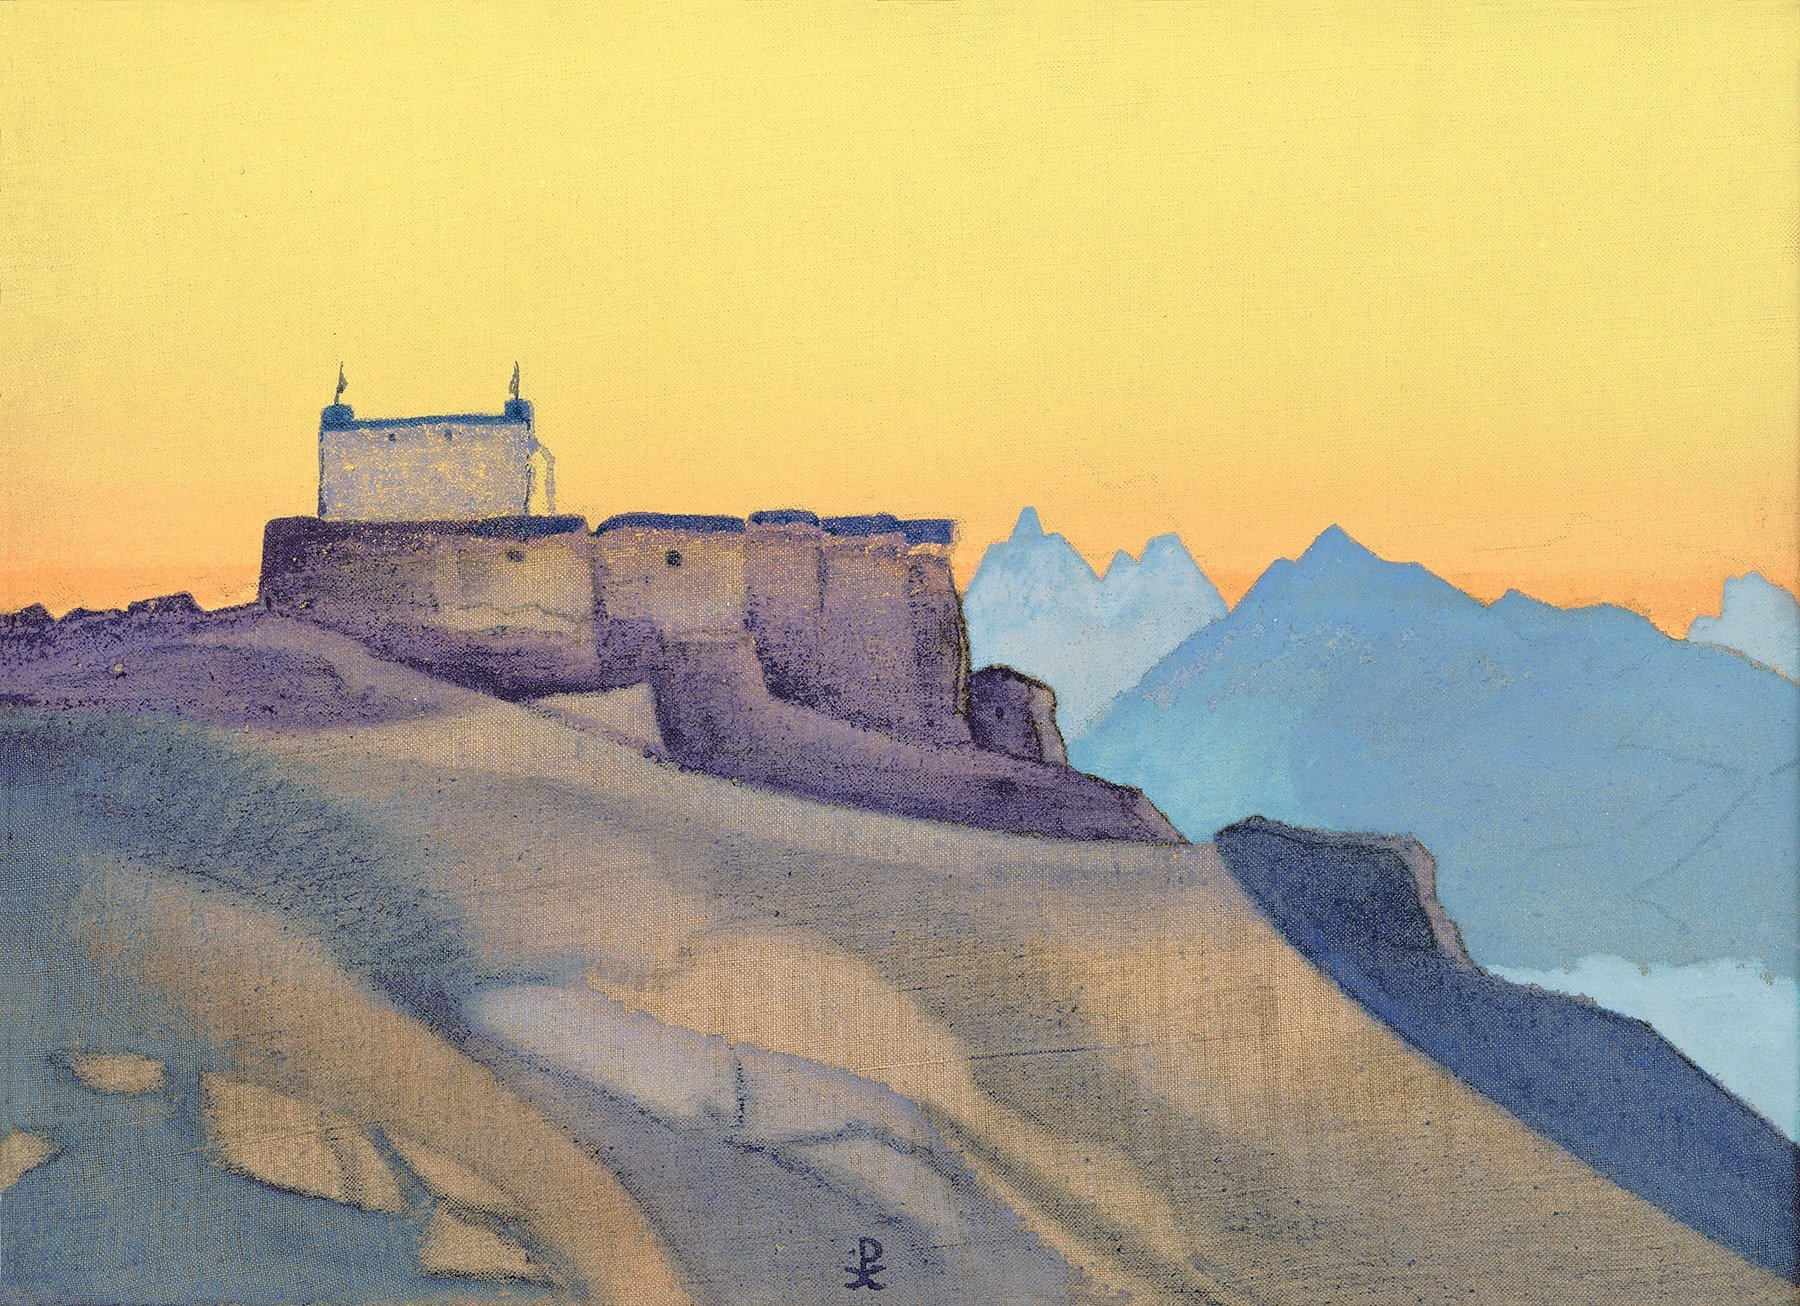 Roerich Painting at Snow Leopard Camp